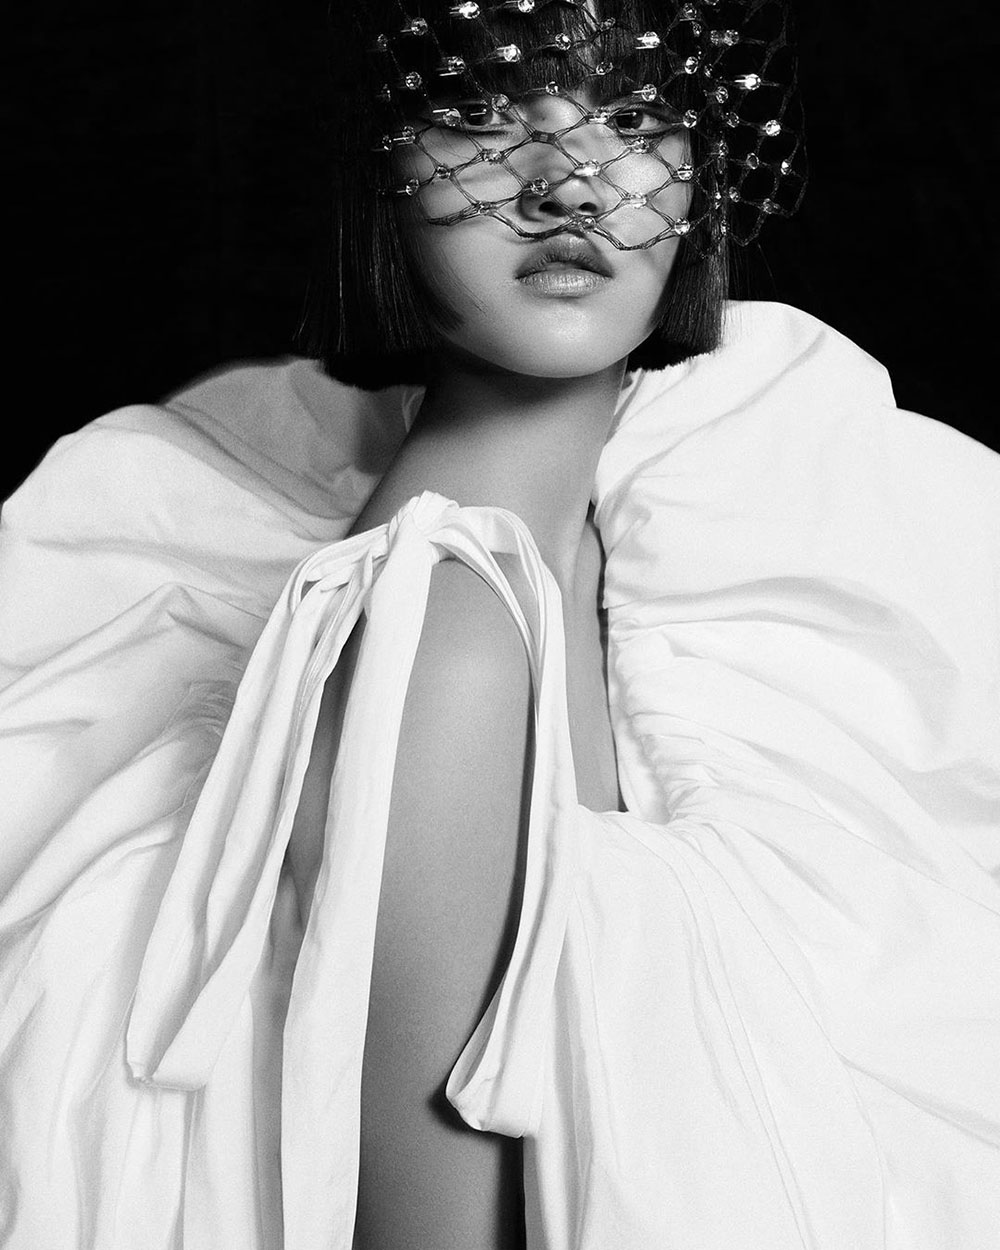 Pan Haowen by Win Tam for Vogue China June 2020